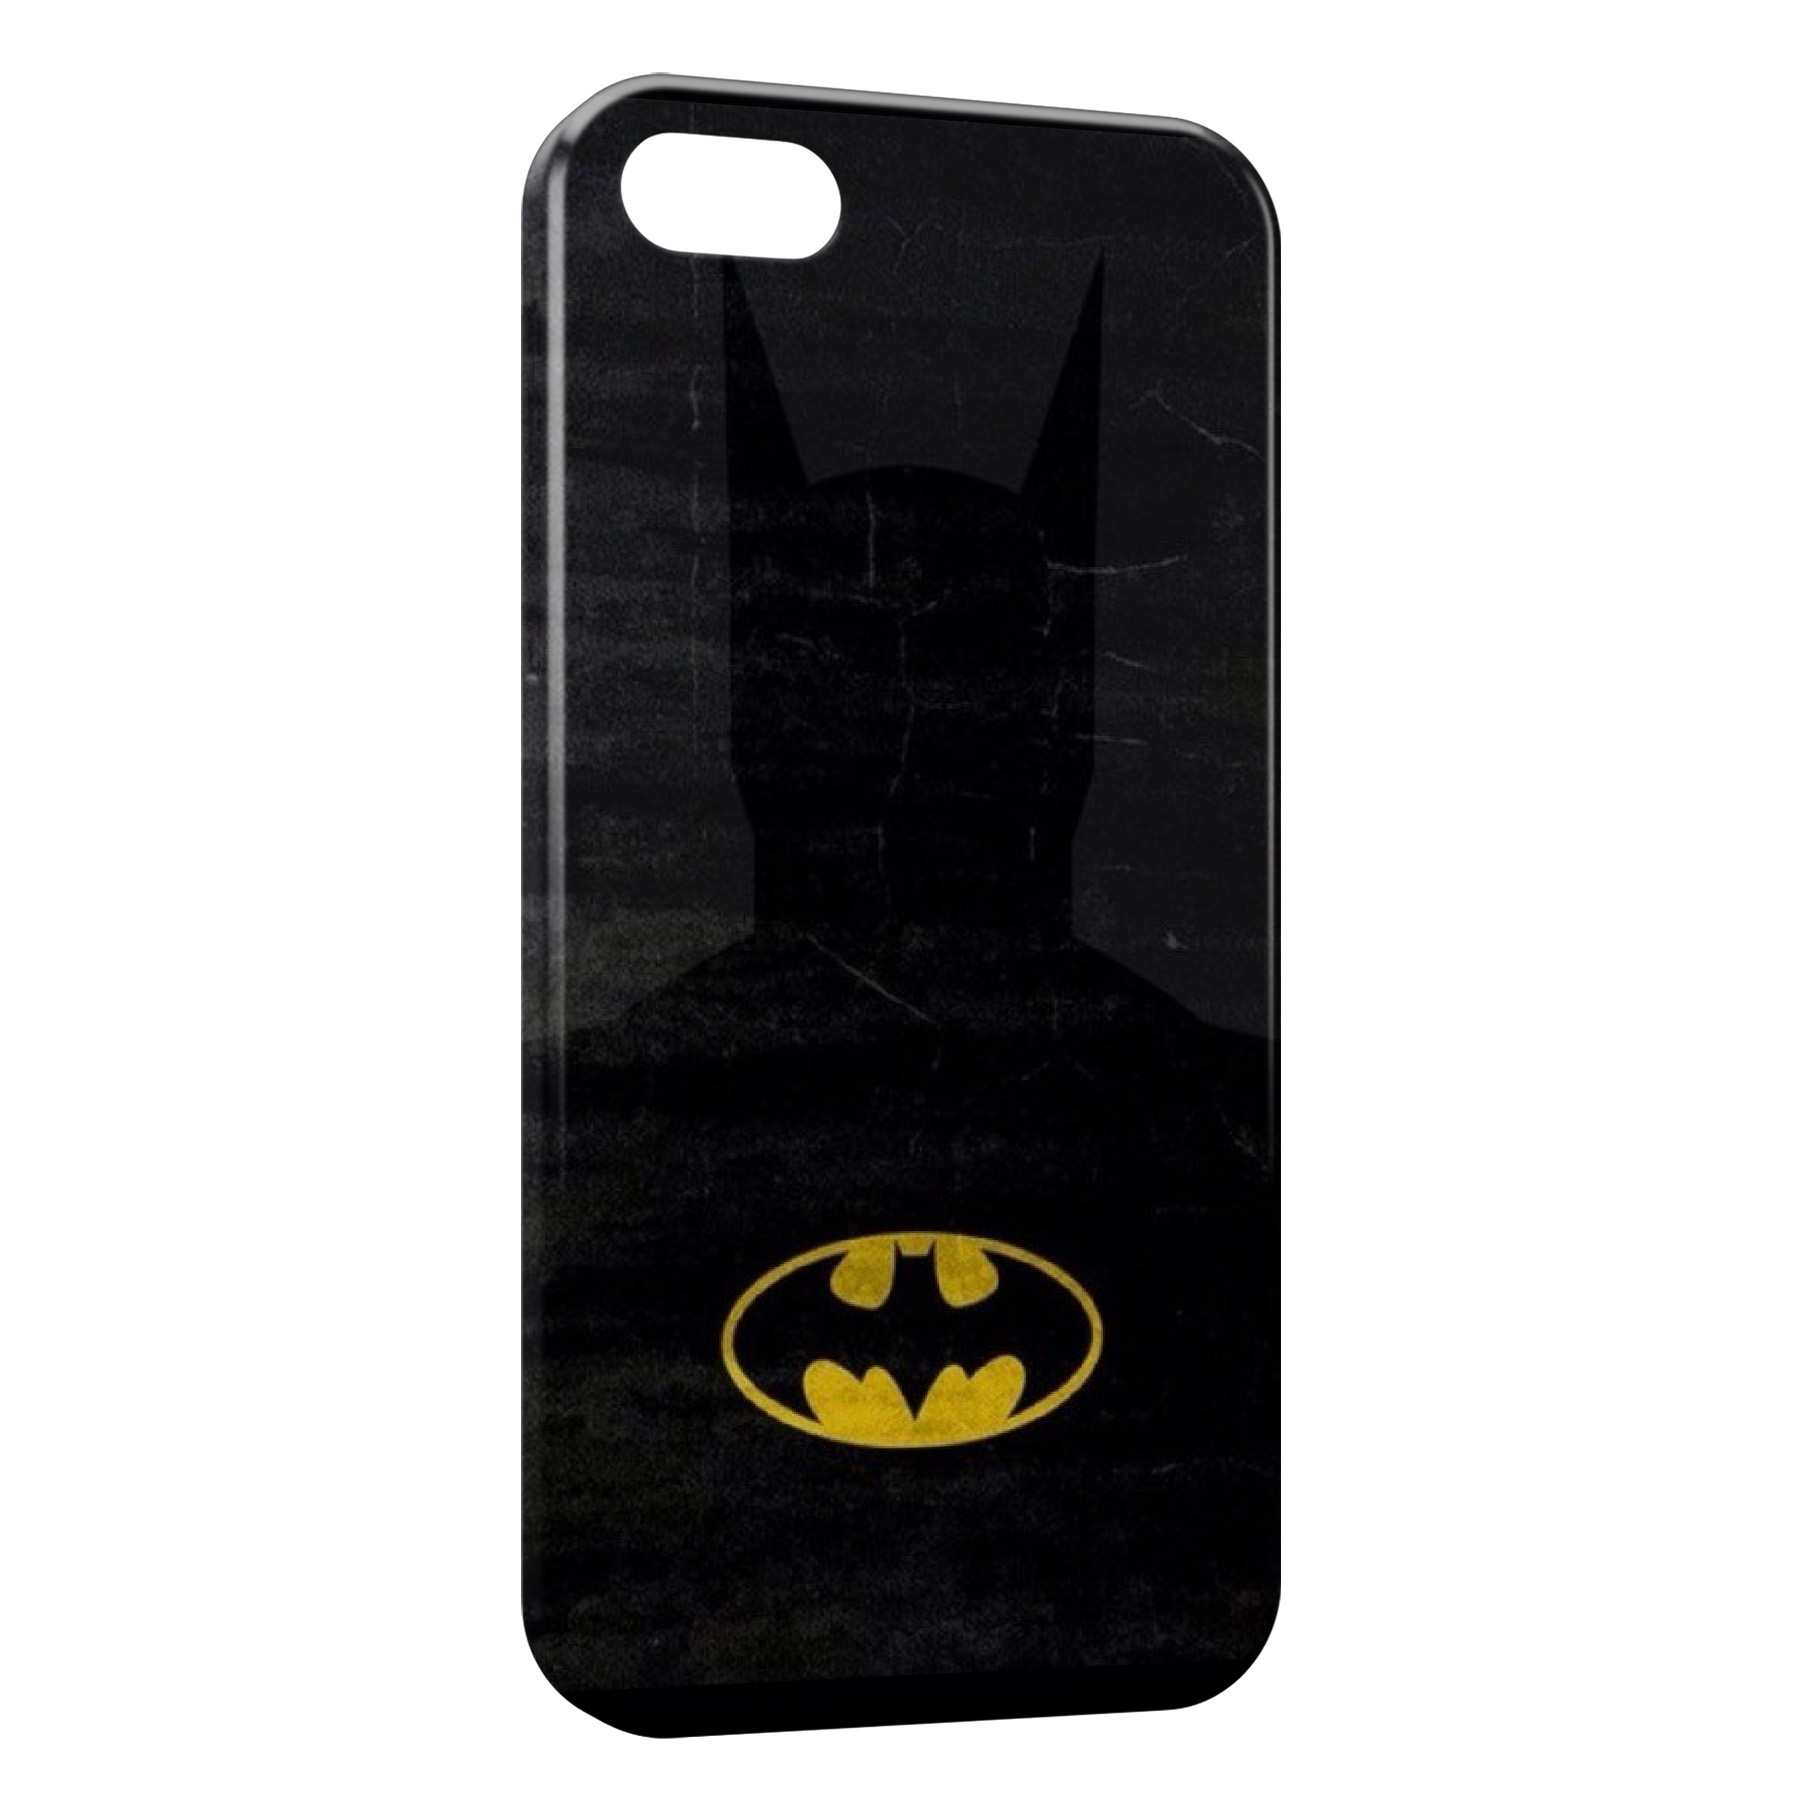 Coque iPhone 4 4S Batman Ombre et Logo